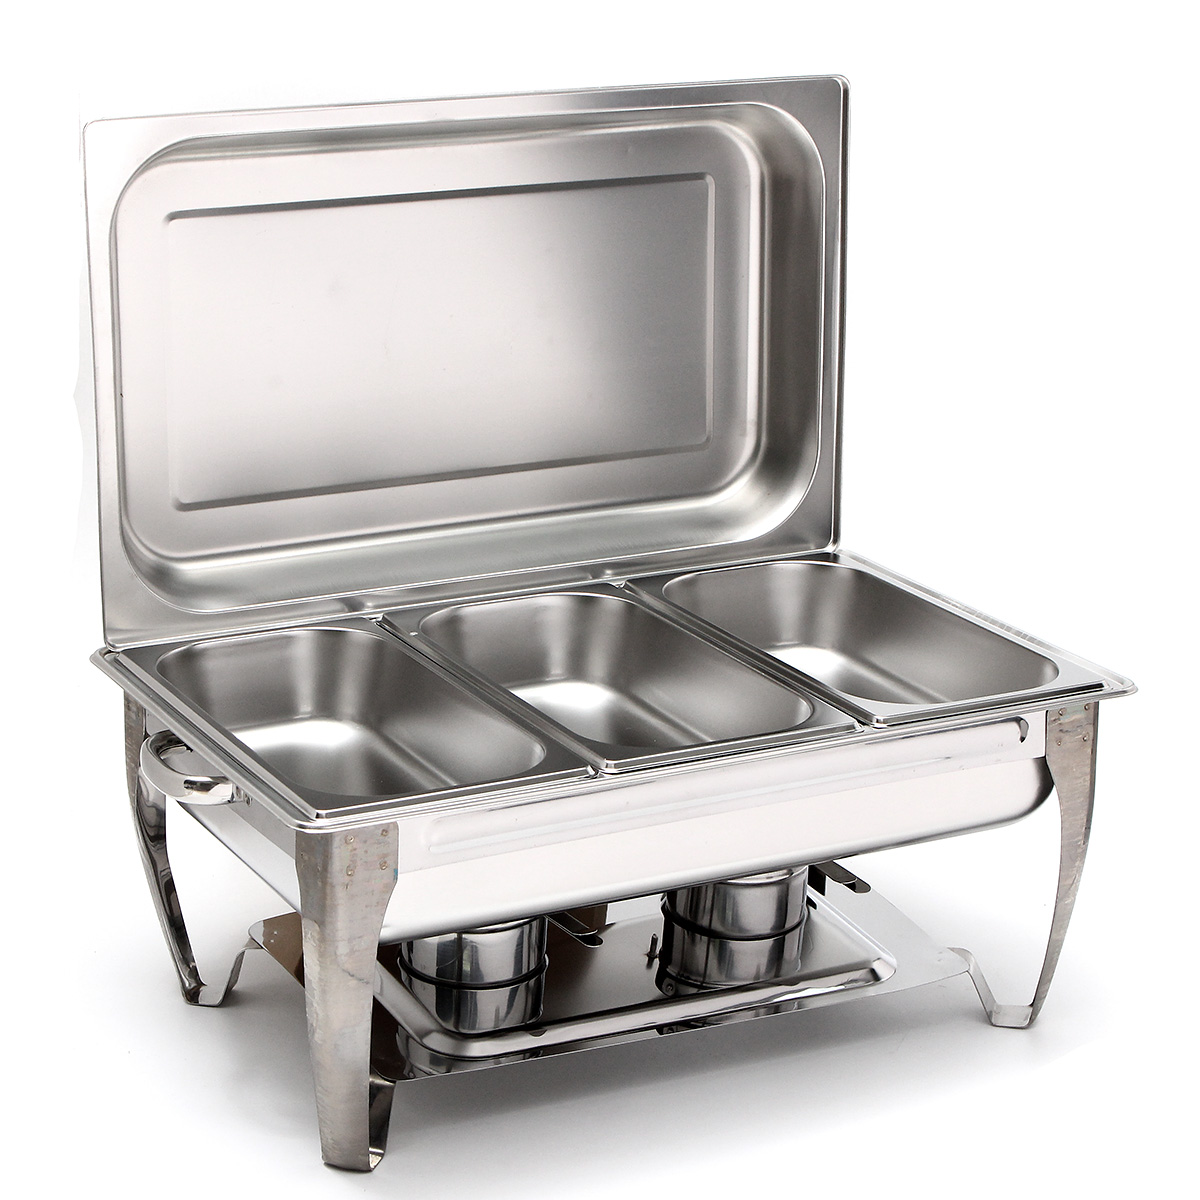 3 Plates 9L Square Buffet Stove Three 2-1 2 Quart Stainless Steel Rectangular Chafing Dish Full Buffet... by